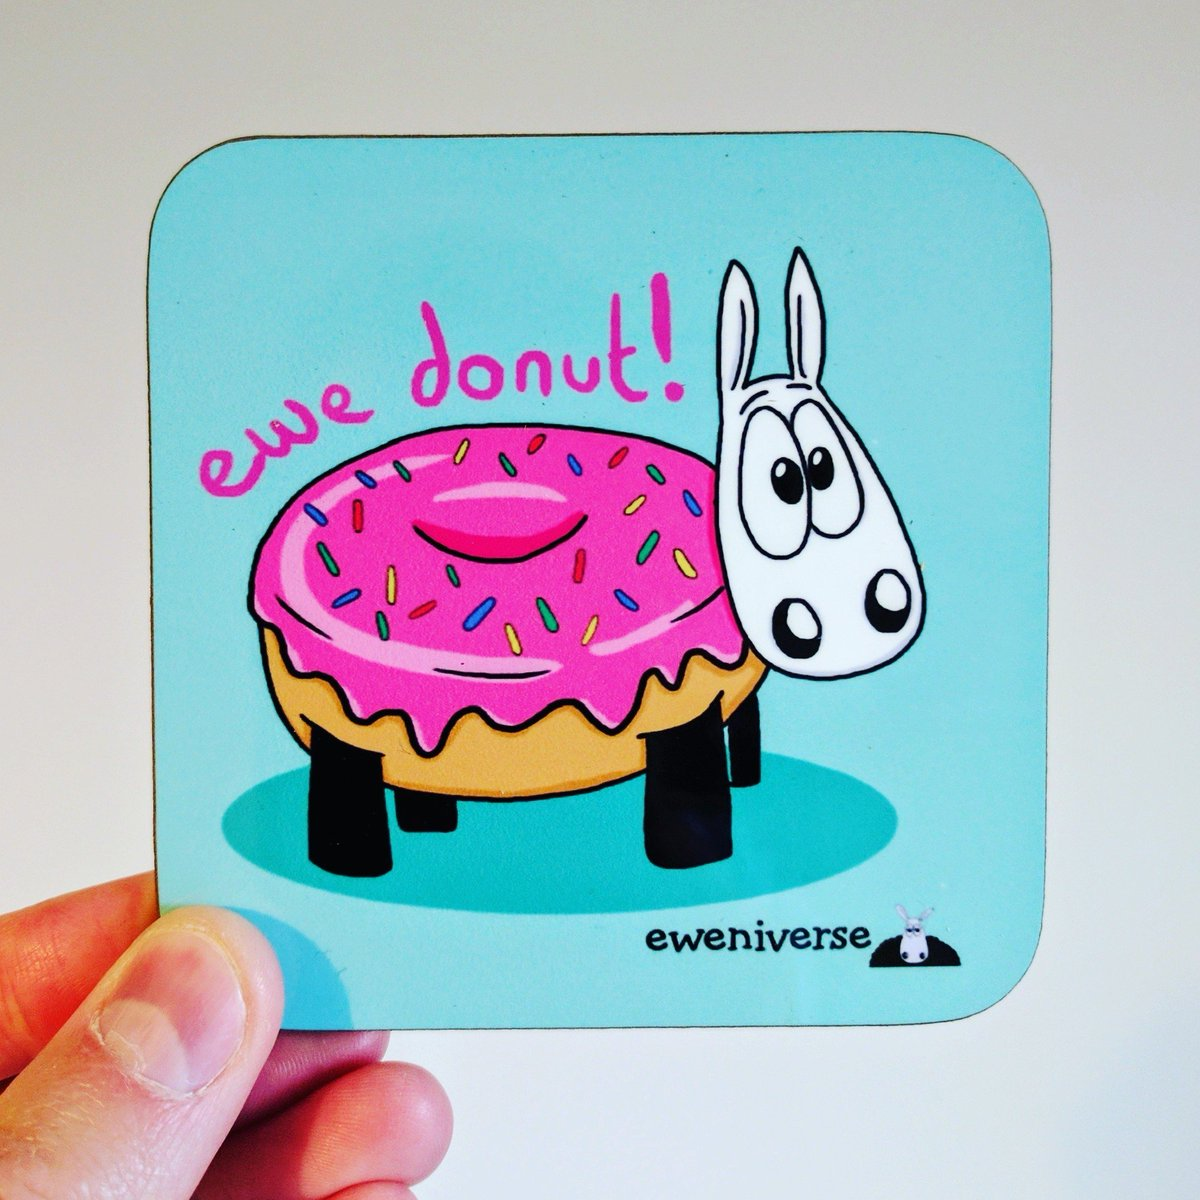 Hello #HandmadeHour!   Our &quot;sweet&quot; new coaster at  http:// eweniverse.com  &nbsp;     #HandmadeHour #Sheep #etsysellers #Etsy <br>http://pic.twitter.com/Az45p2bV51